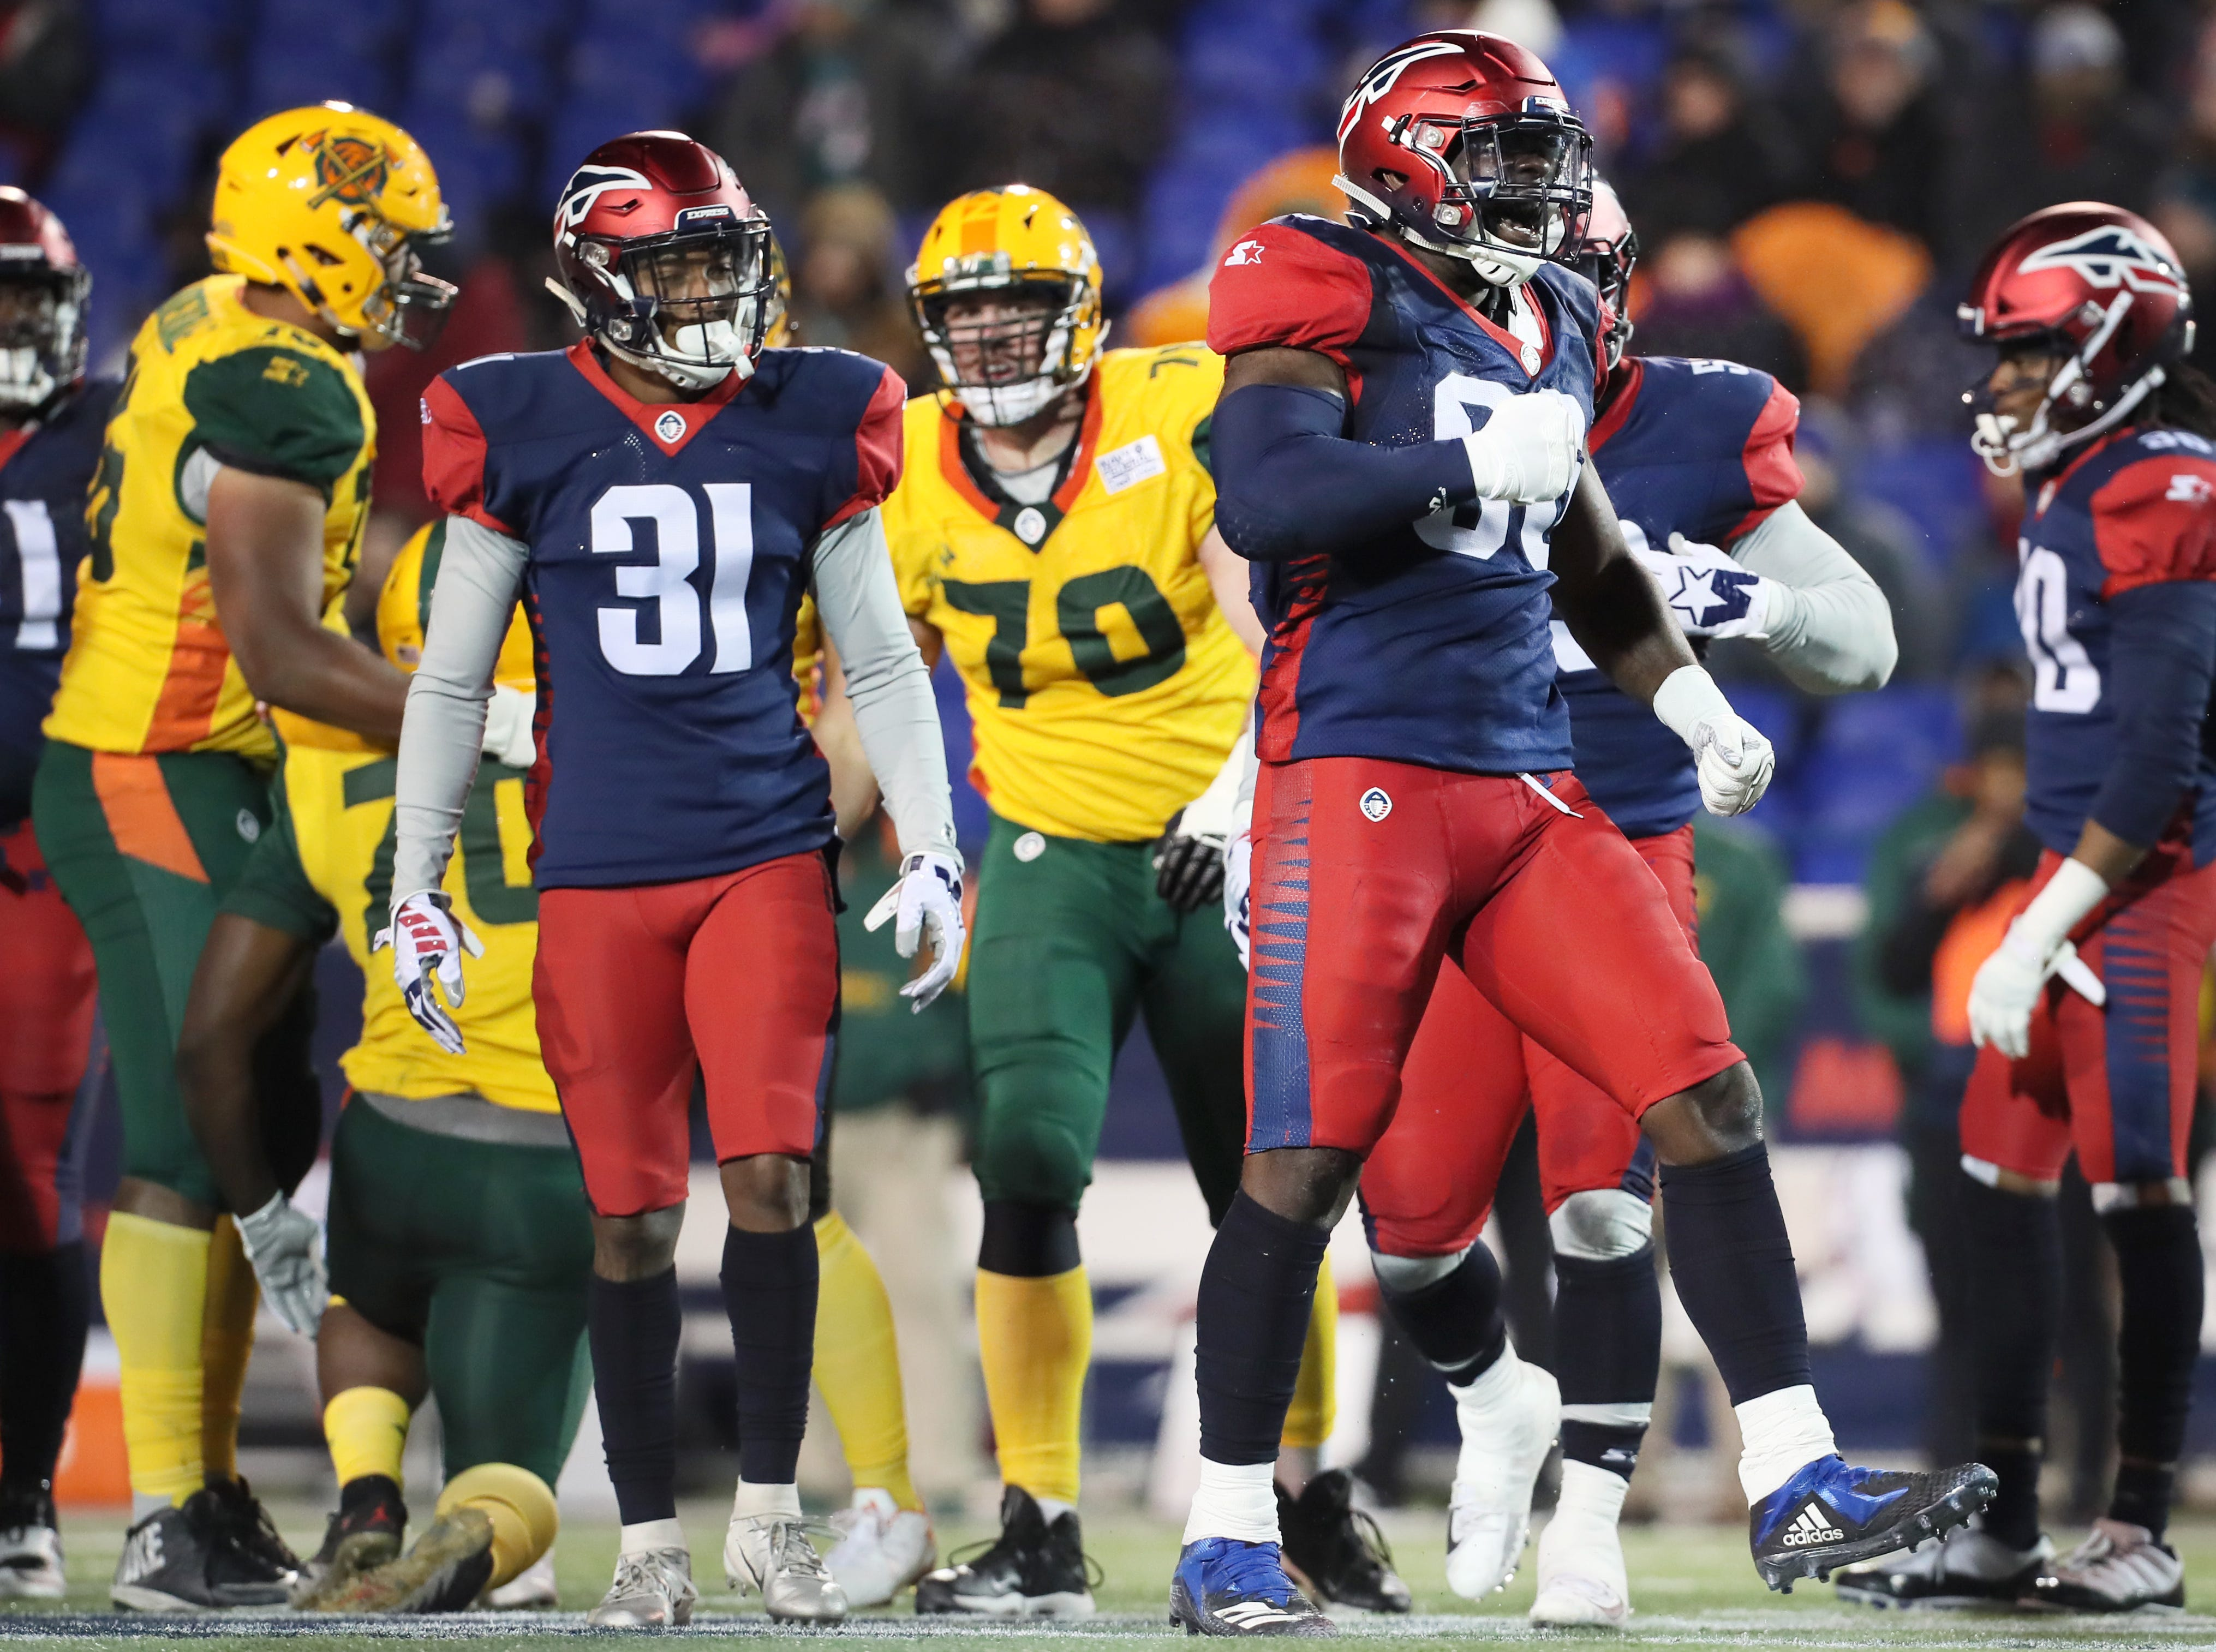 Memphis Express linebacker Anthony Johnson celebrates a tackle against the Arizona Hotshots during their game at the Liberty Bowl on Saturday, Feb. 16, 2019.